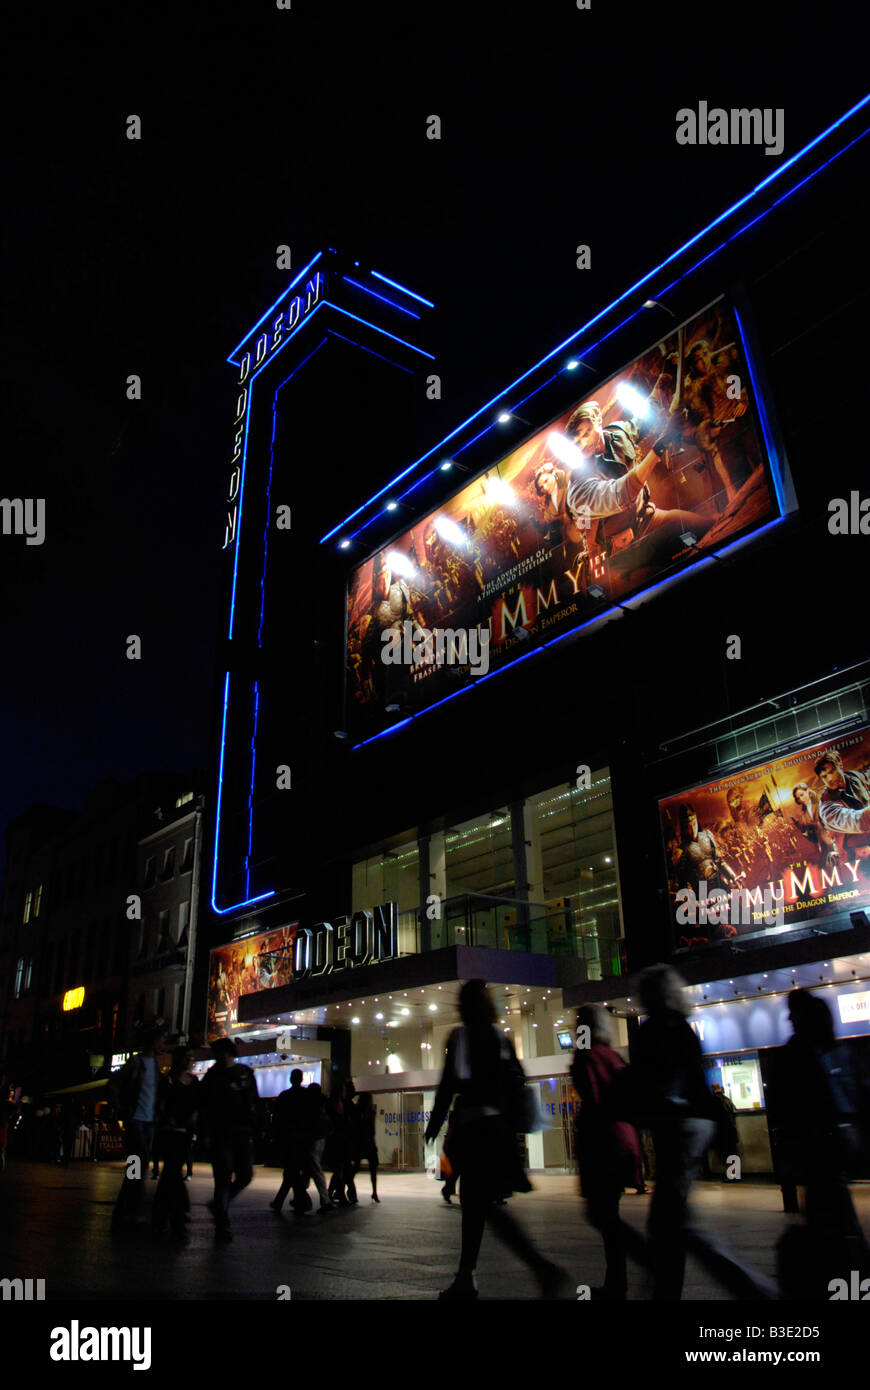 Women passing the Odeon Leicester Square cinema at night London England - Stock Image